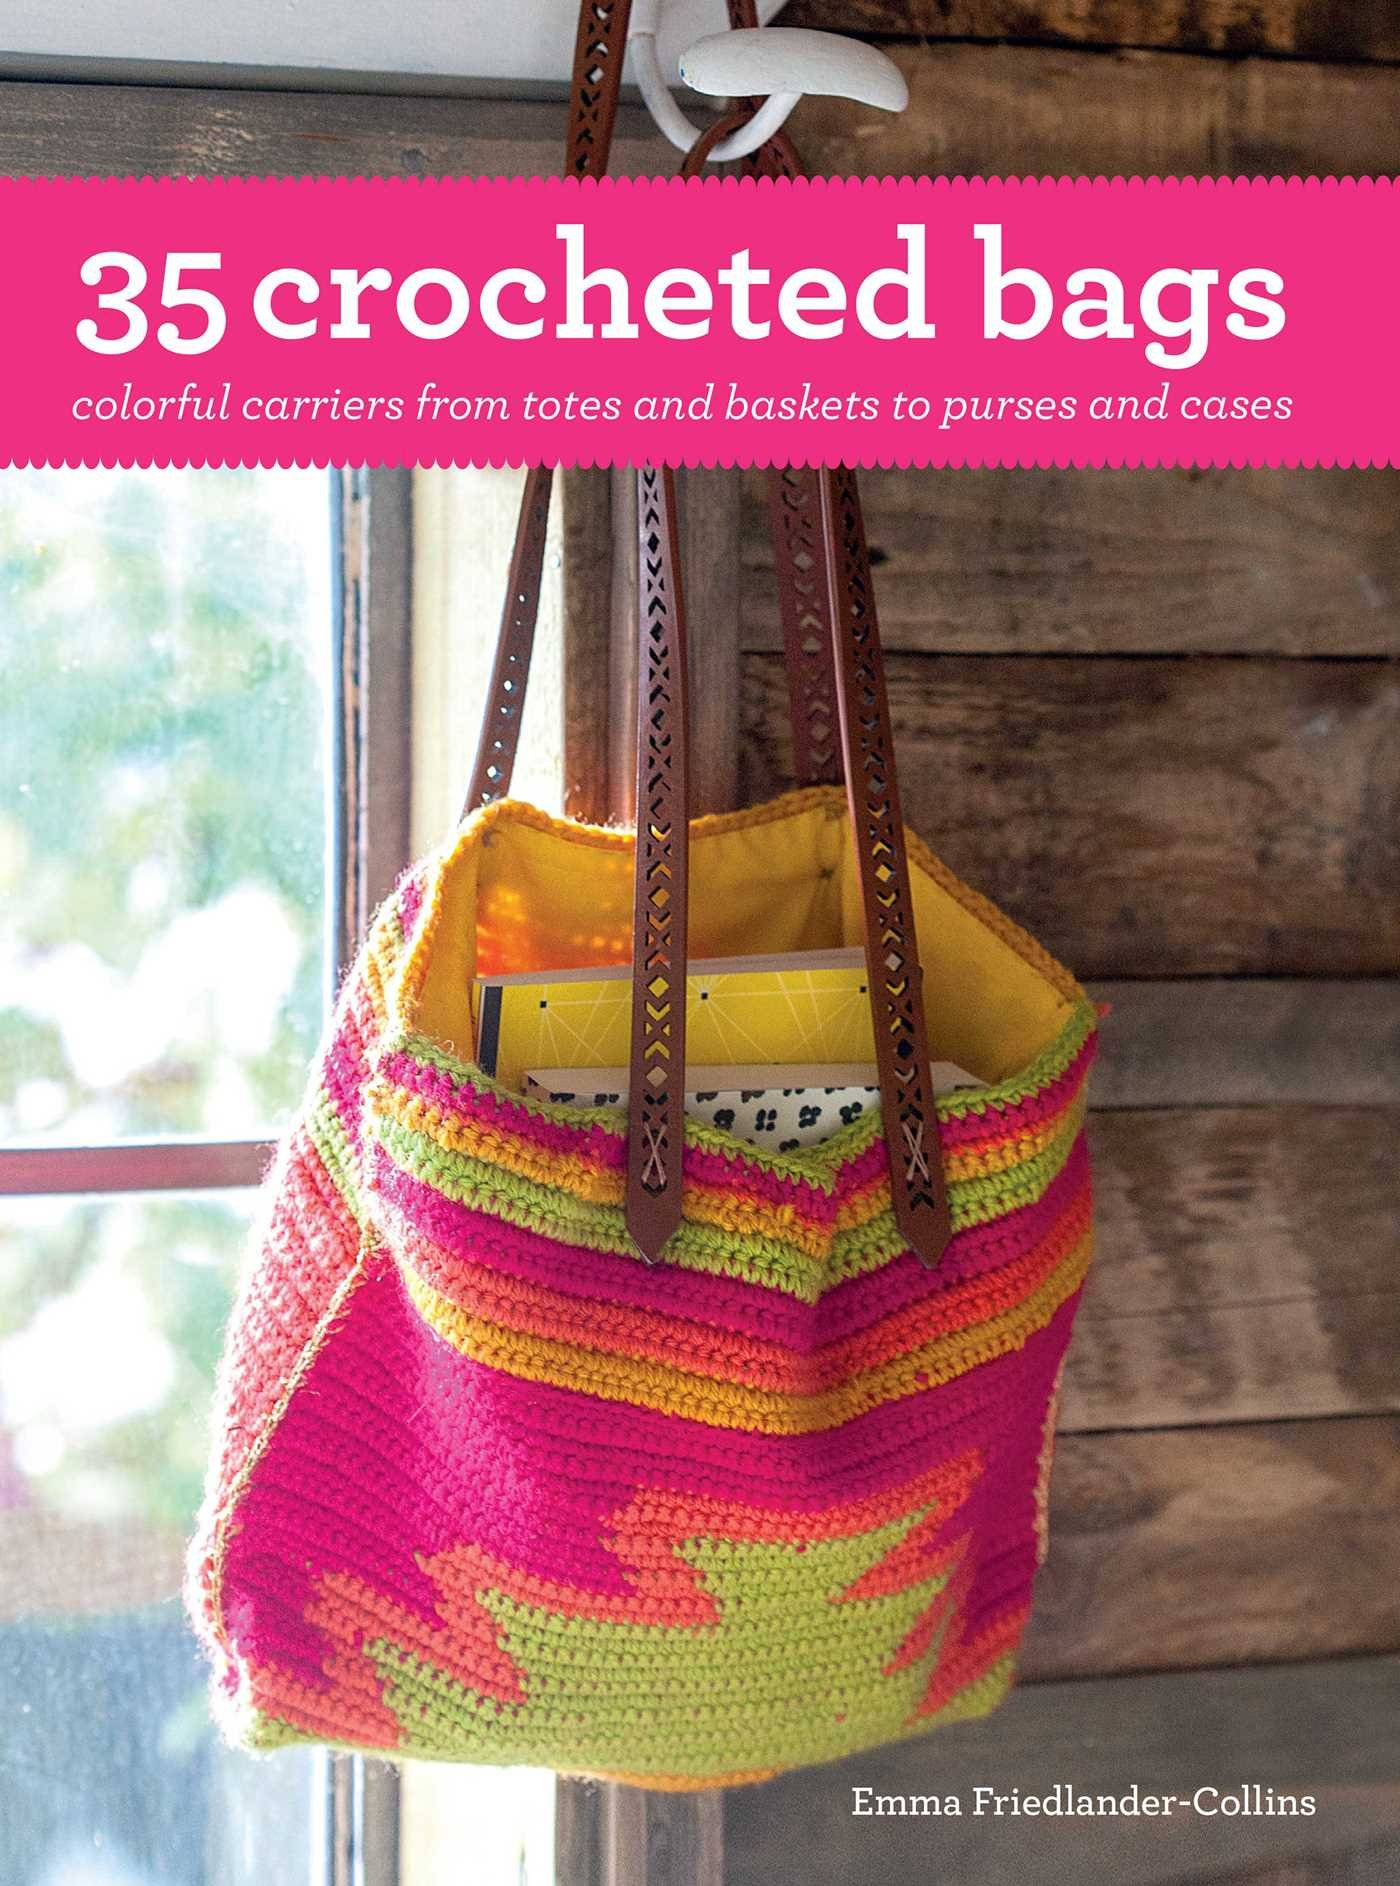 35 crocheted bags colorful carriers from totes and baskets to 35 crocheted bags colorful carriers from totes and baskets to purses and cases emma friedlander collins 9781782493679 amazon books bankloansurffo Choice Image